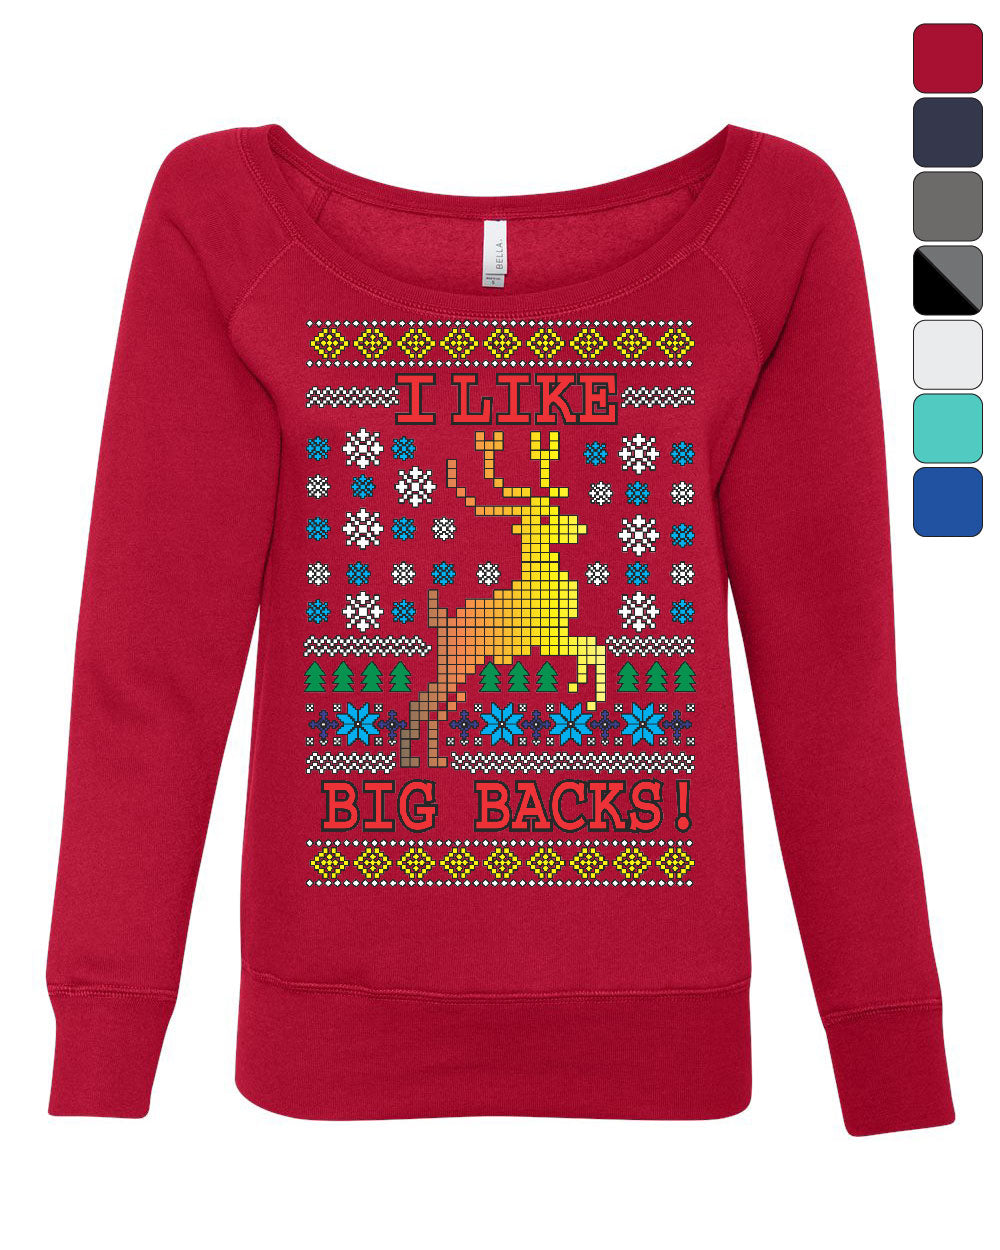 Ugly Sweater Christmas.Details About I Like Big Racks Ugly Sweater Women S Sweatshirt Christmas Reindeer Boobs